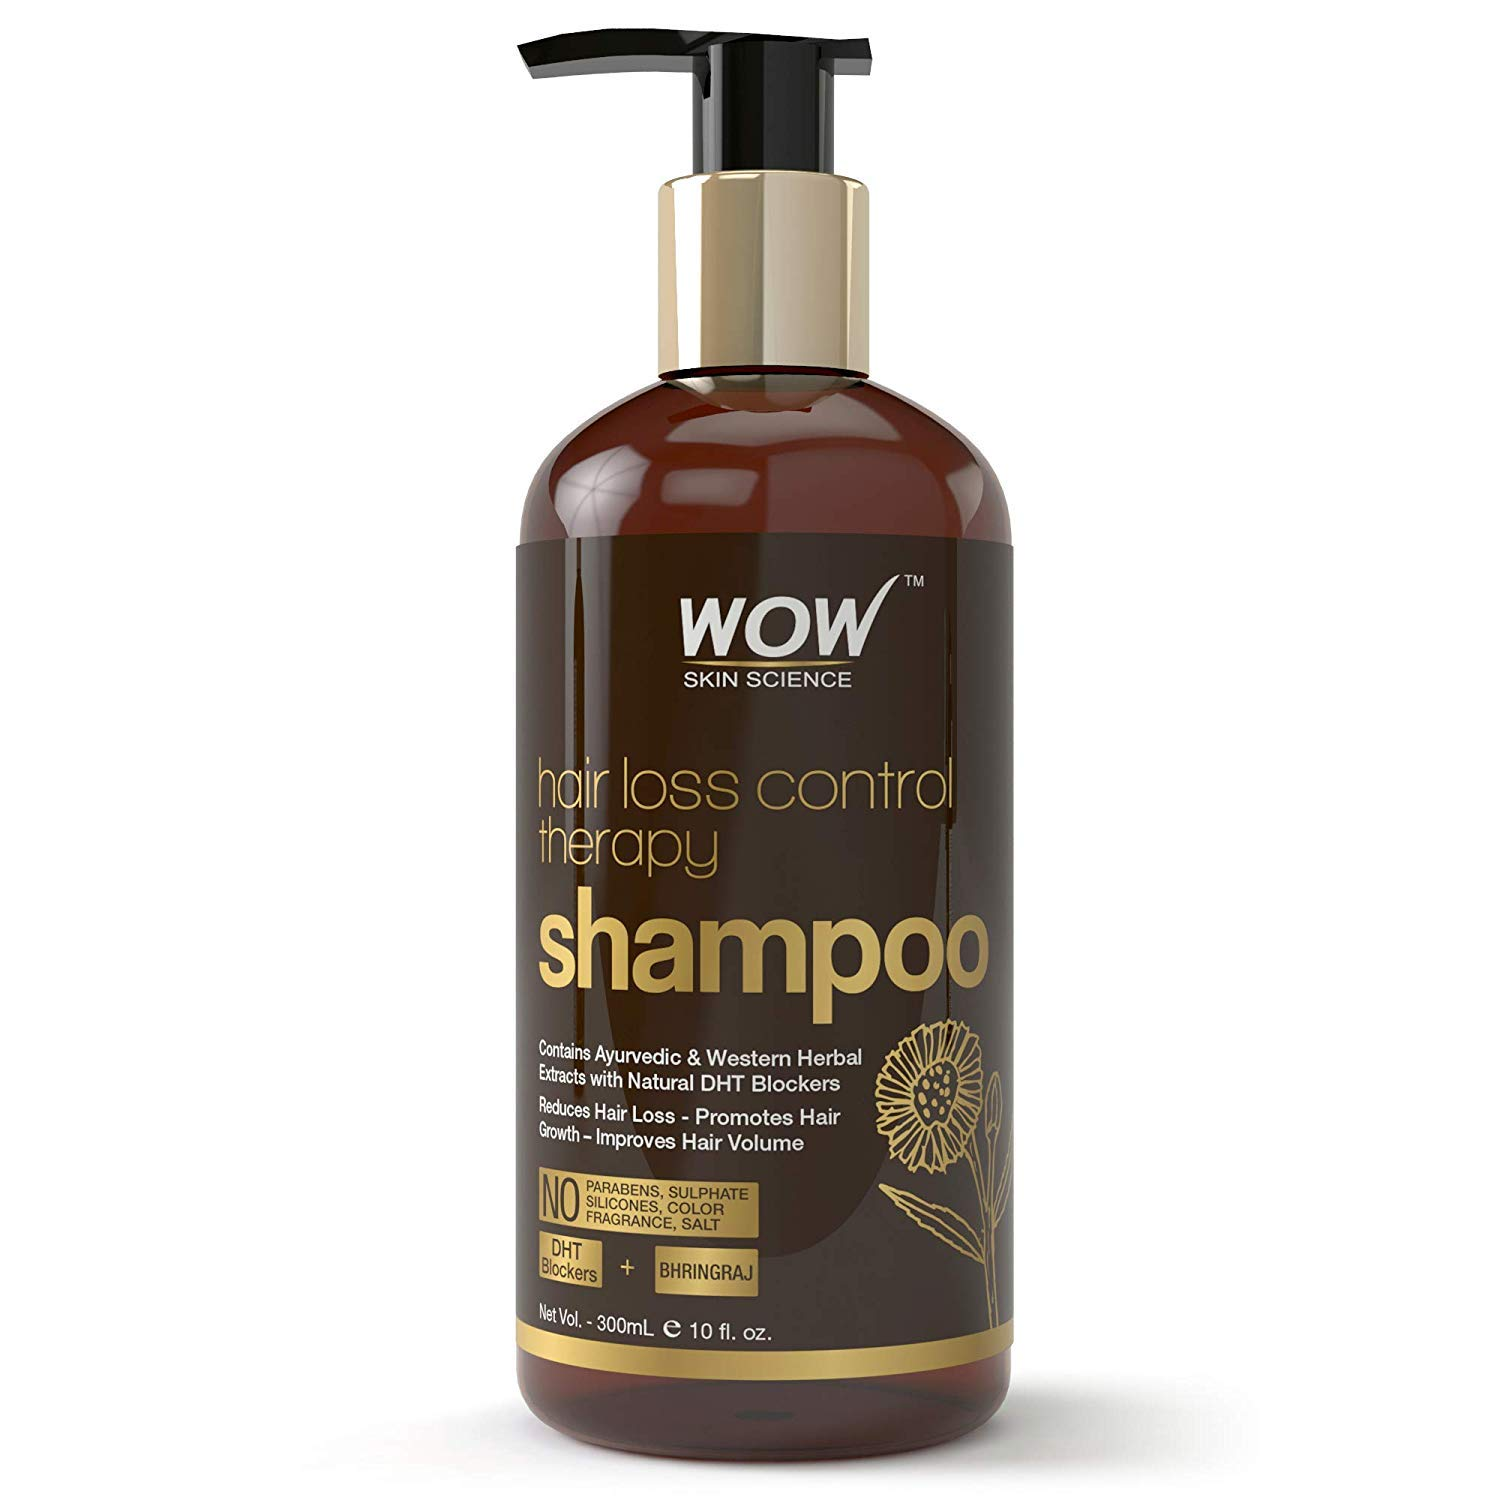 WOW Skin Science Hair Loss Control Therapy Shampoo - Increase Thick & Healthy Hair Growth - Contains Ayuvedic & Western Herbal Extracts with Natural DHT Blockers - For All Hair Types - 300 mL by WOW